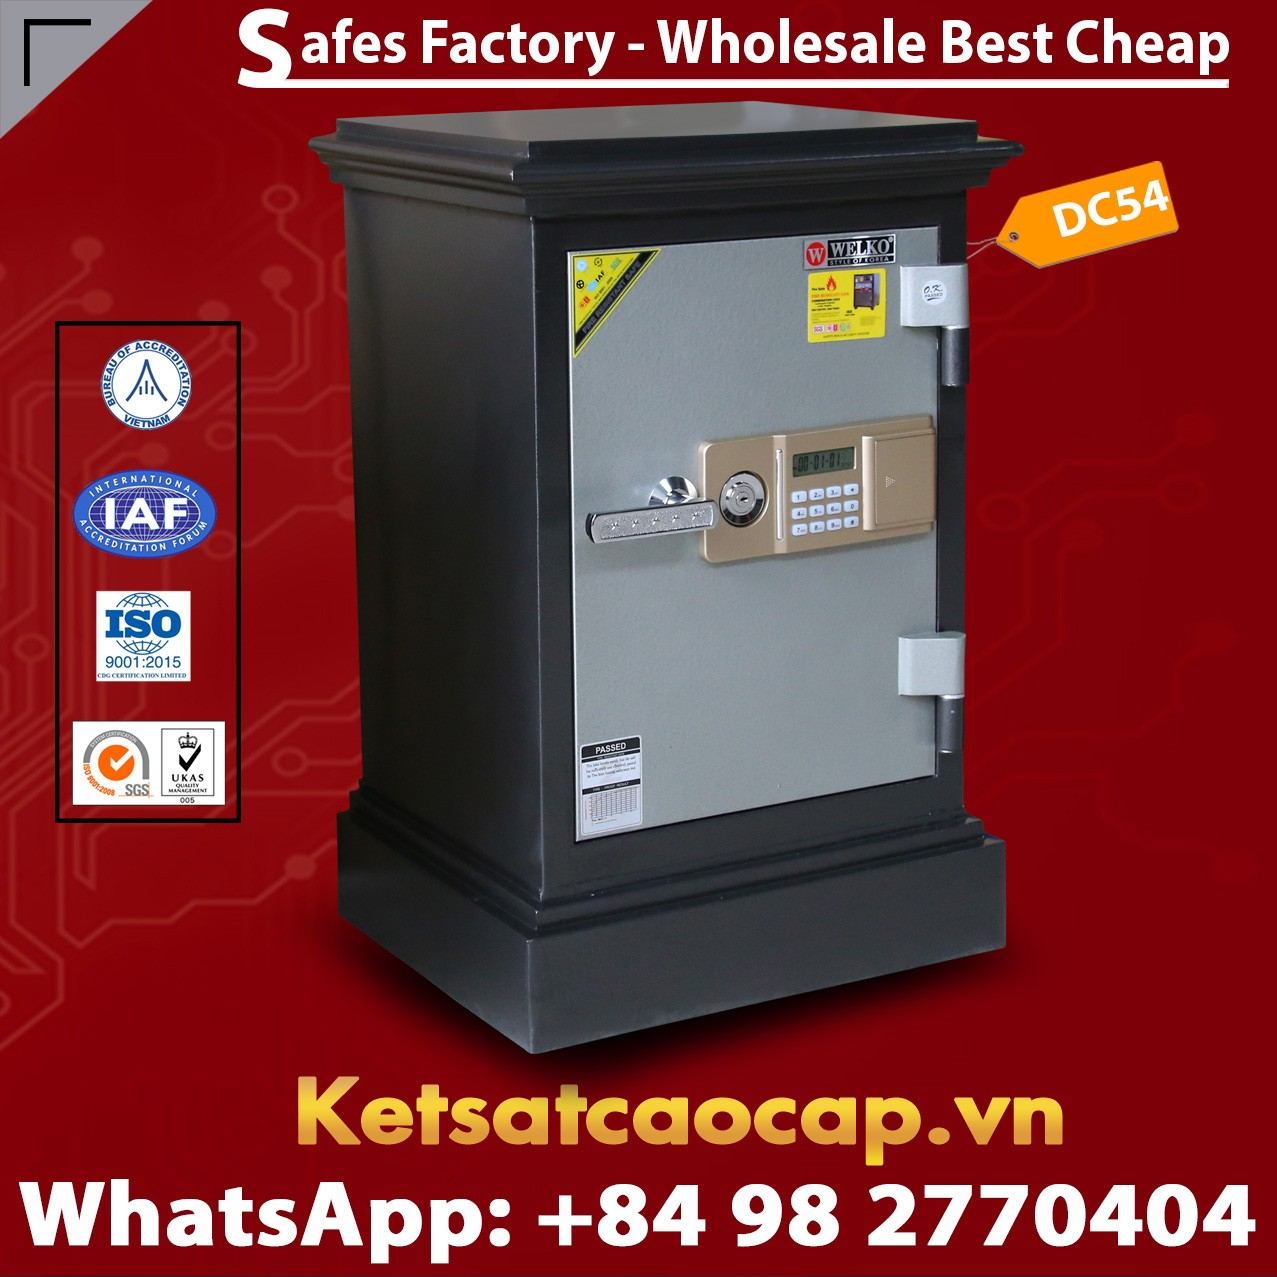 DC54 E Personal & Home Safes Security Safes Best Seller